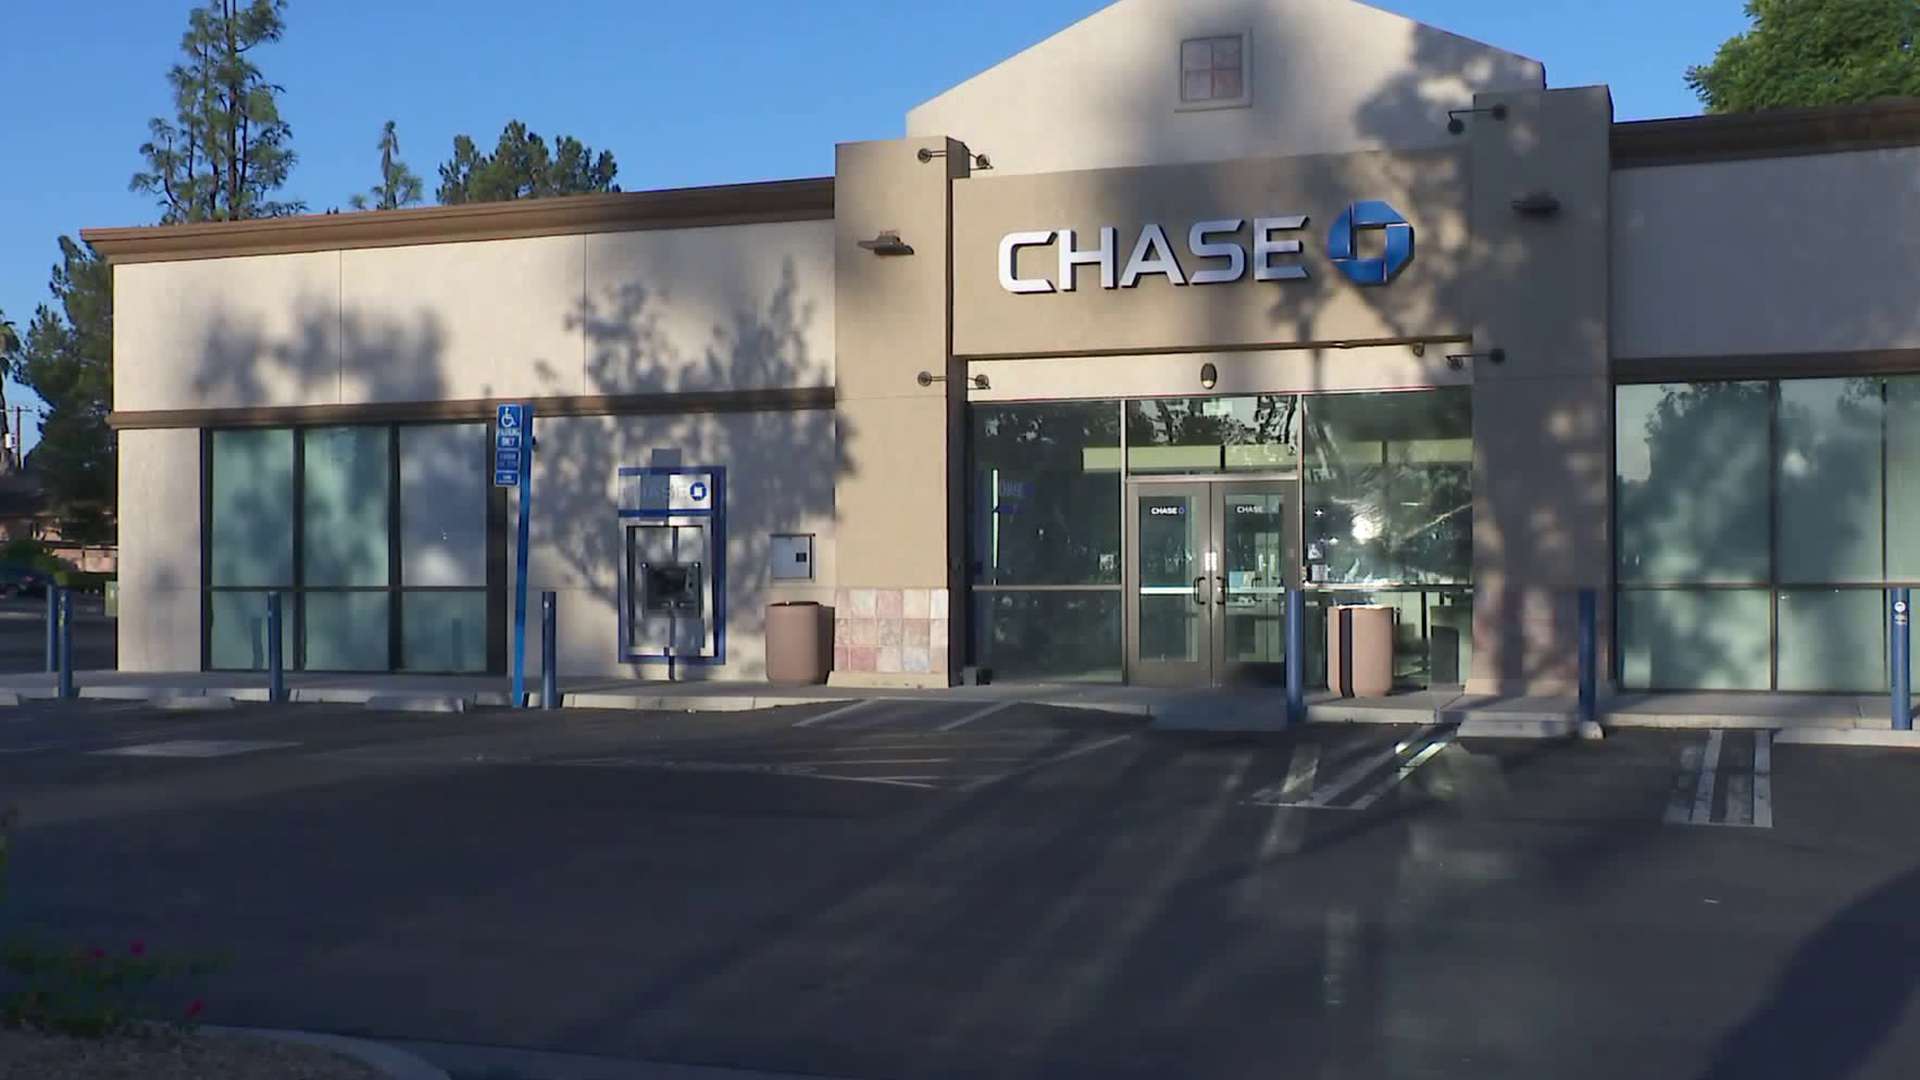 A Chase bank in Colton is seen on Oct. 2, 2019 after an incident in which a robbery suspect opened fire at police. (Credit: KTLA)